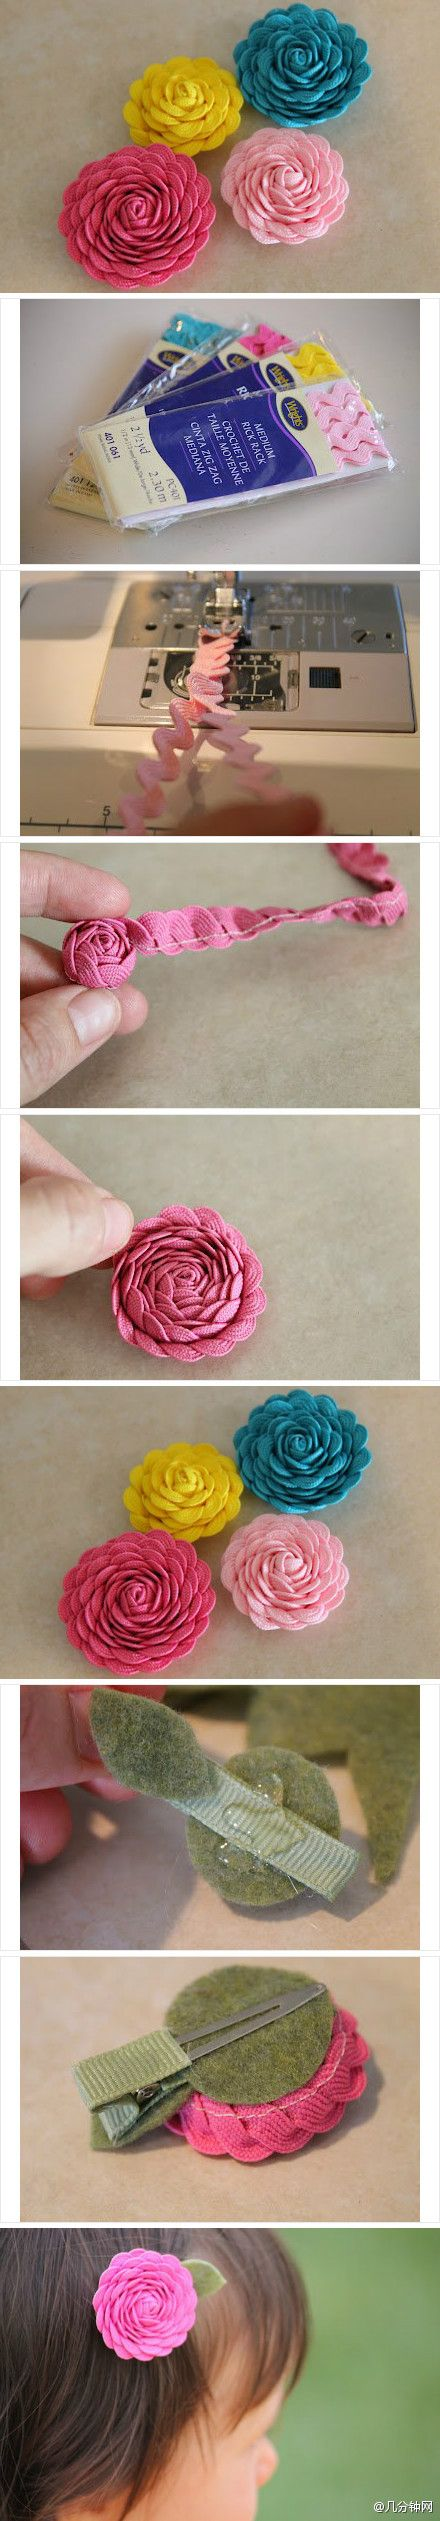 Rick-rack DIY flower tutorial